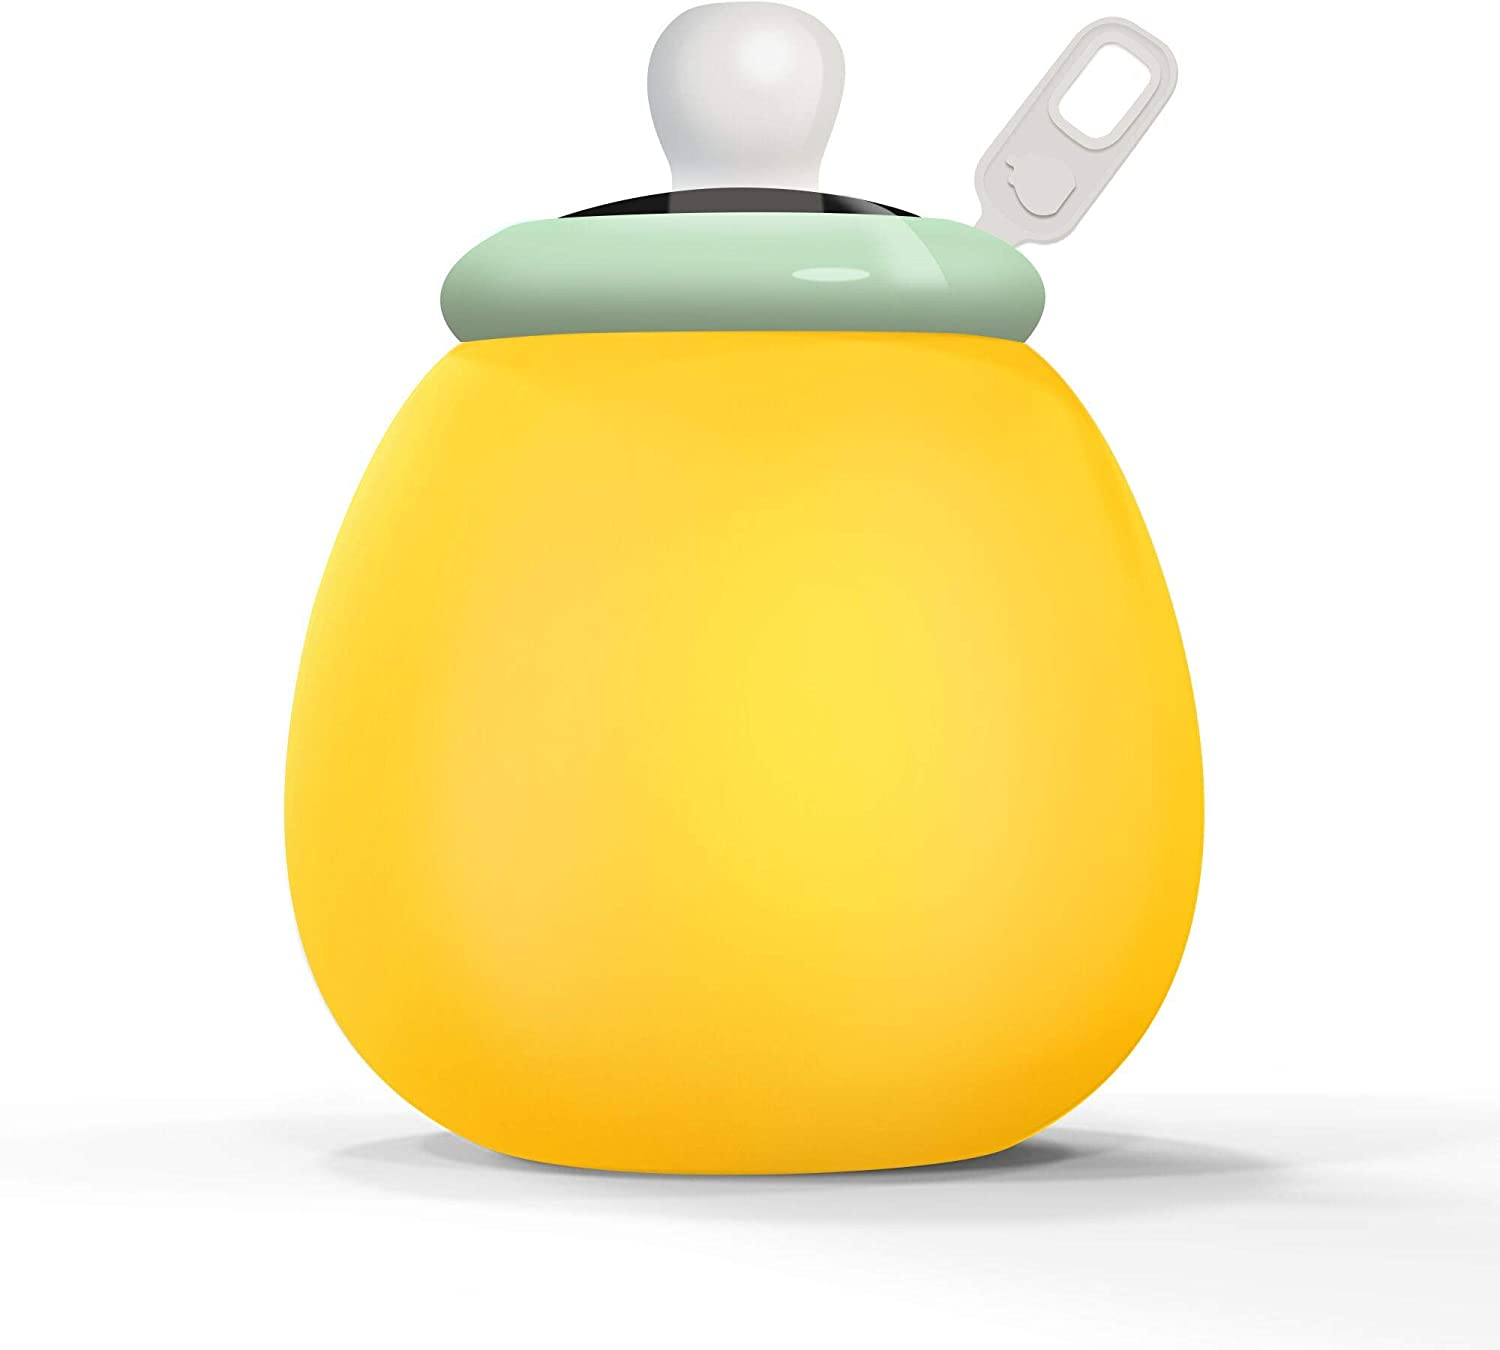 Night Lights for Kids Soft Silicone Baby Night Light with Touch Sensor, Bedside Lamp Adjustable Warm/Cool LED Baby Nursery Lamp, Portable and Rechargeable Bedroom Lights Green